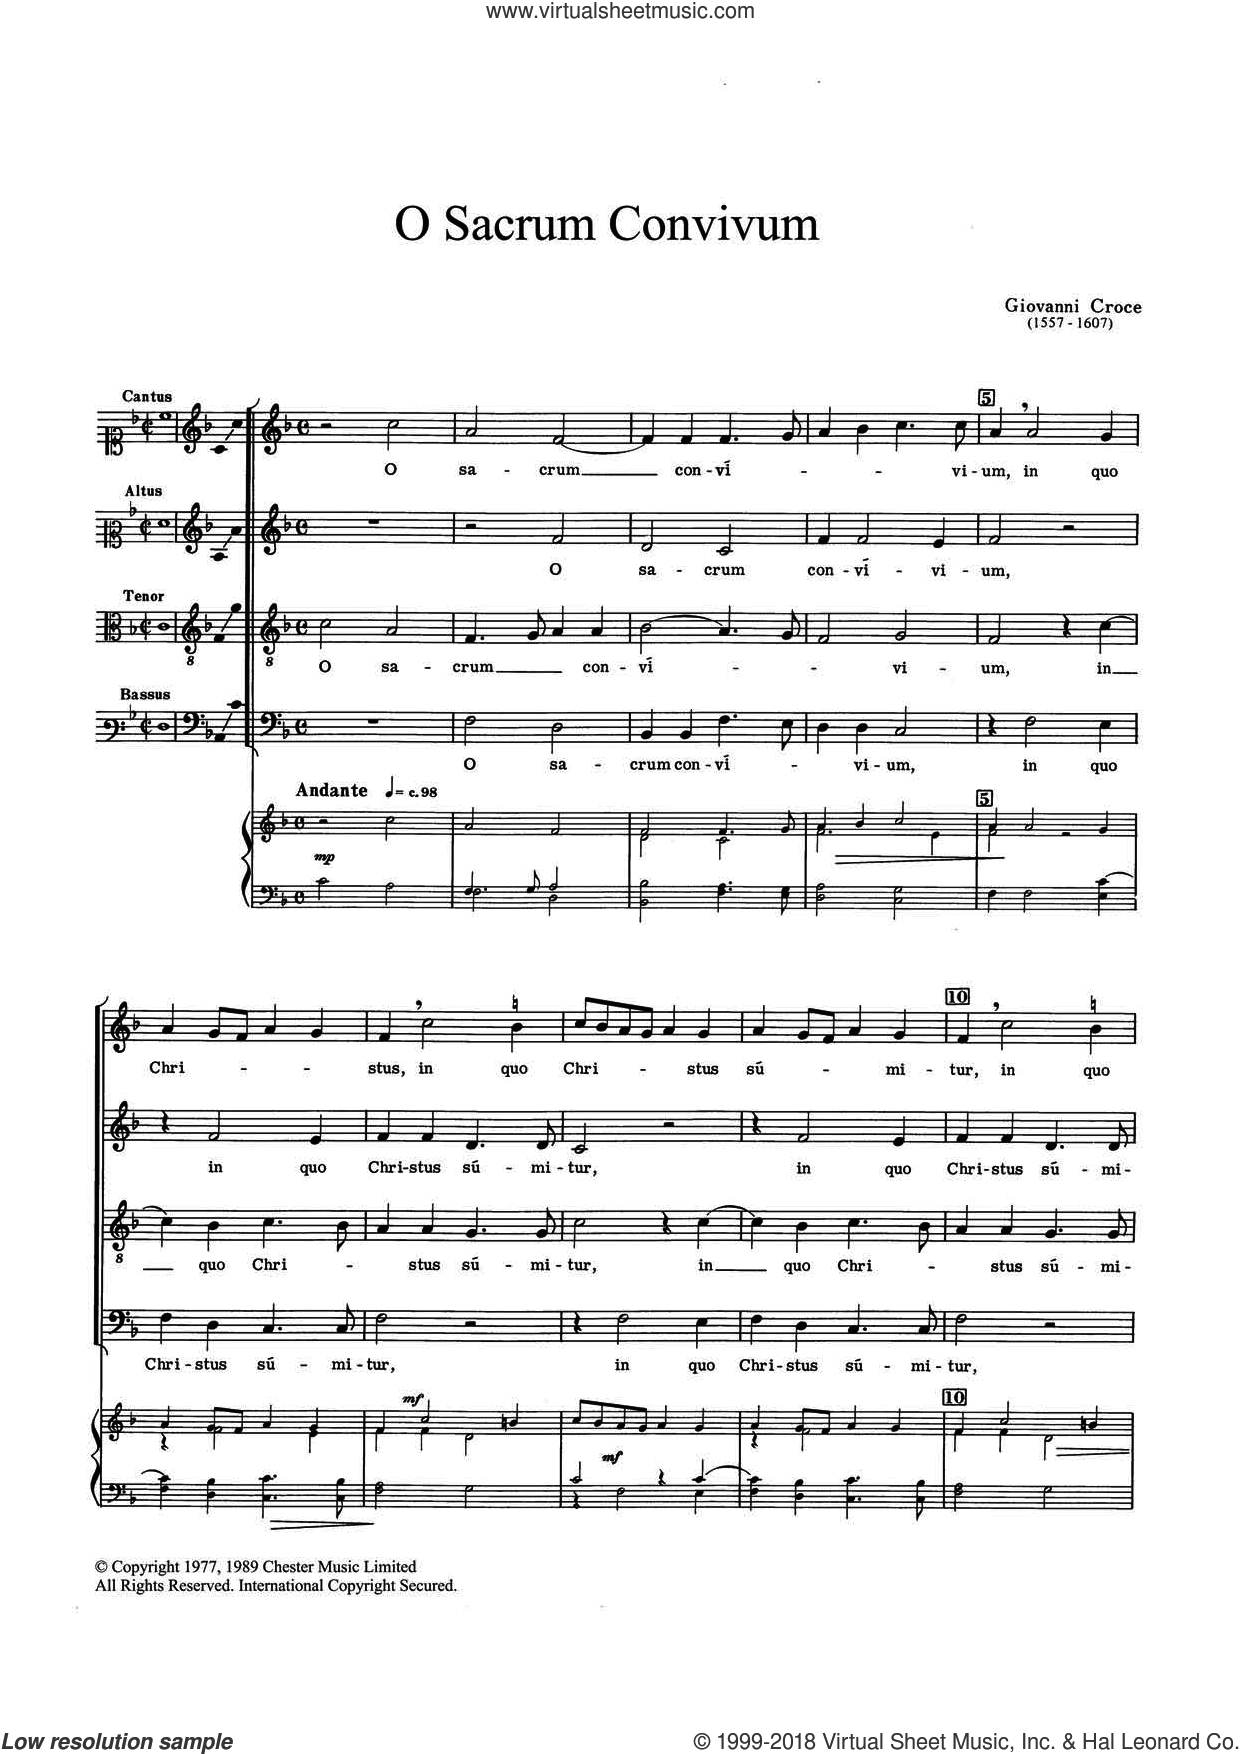 O Sacrum Convivium sheet music for choir by Giovanni Croce, classical score, intermediate skill level